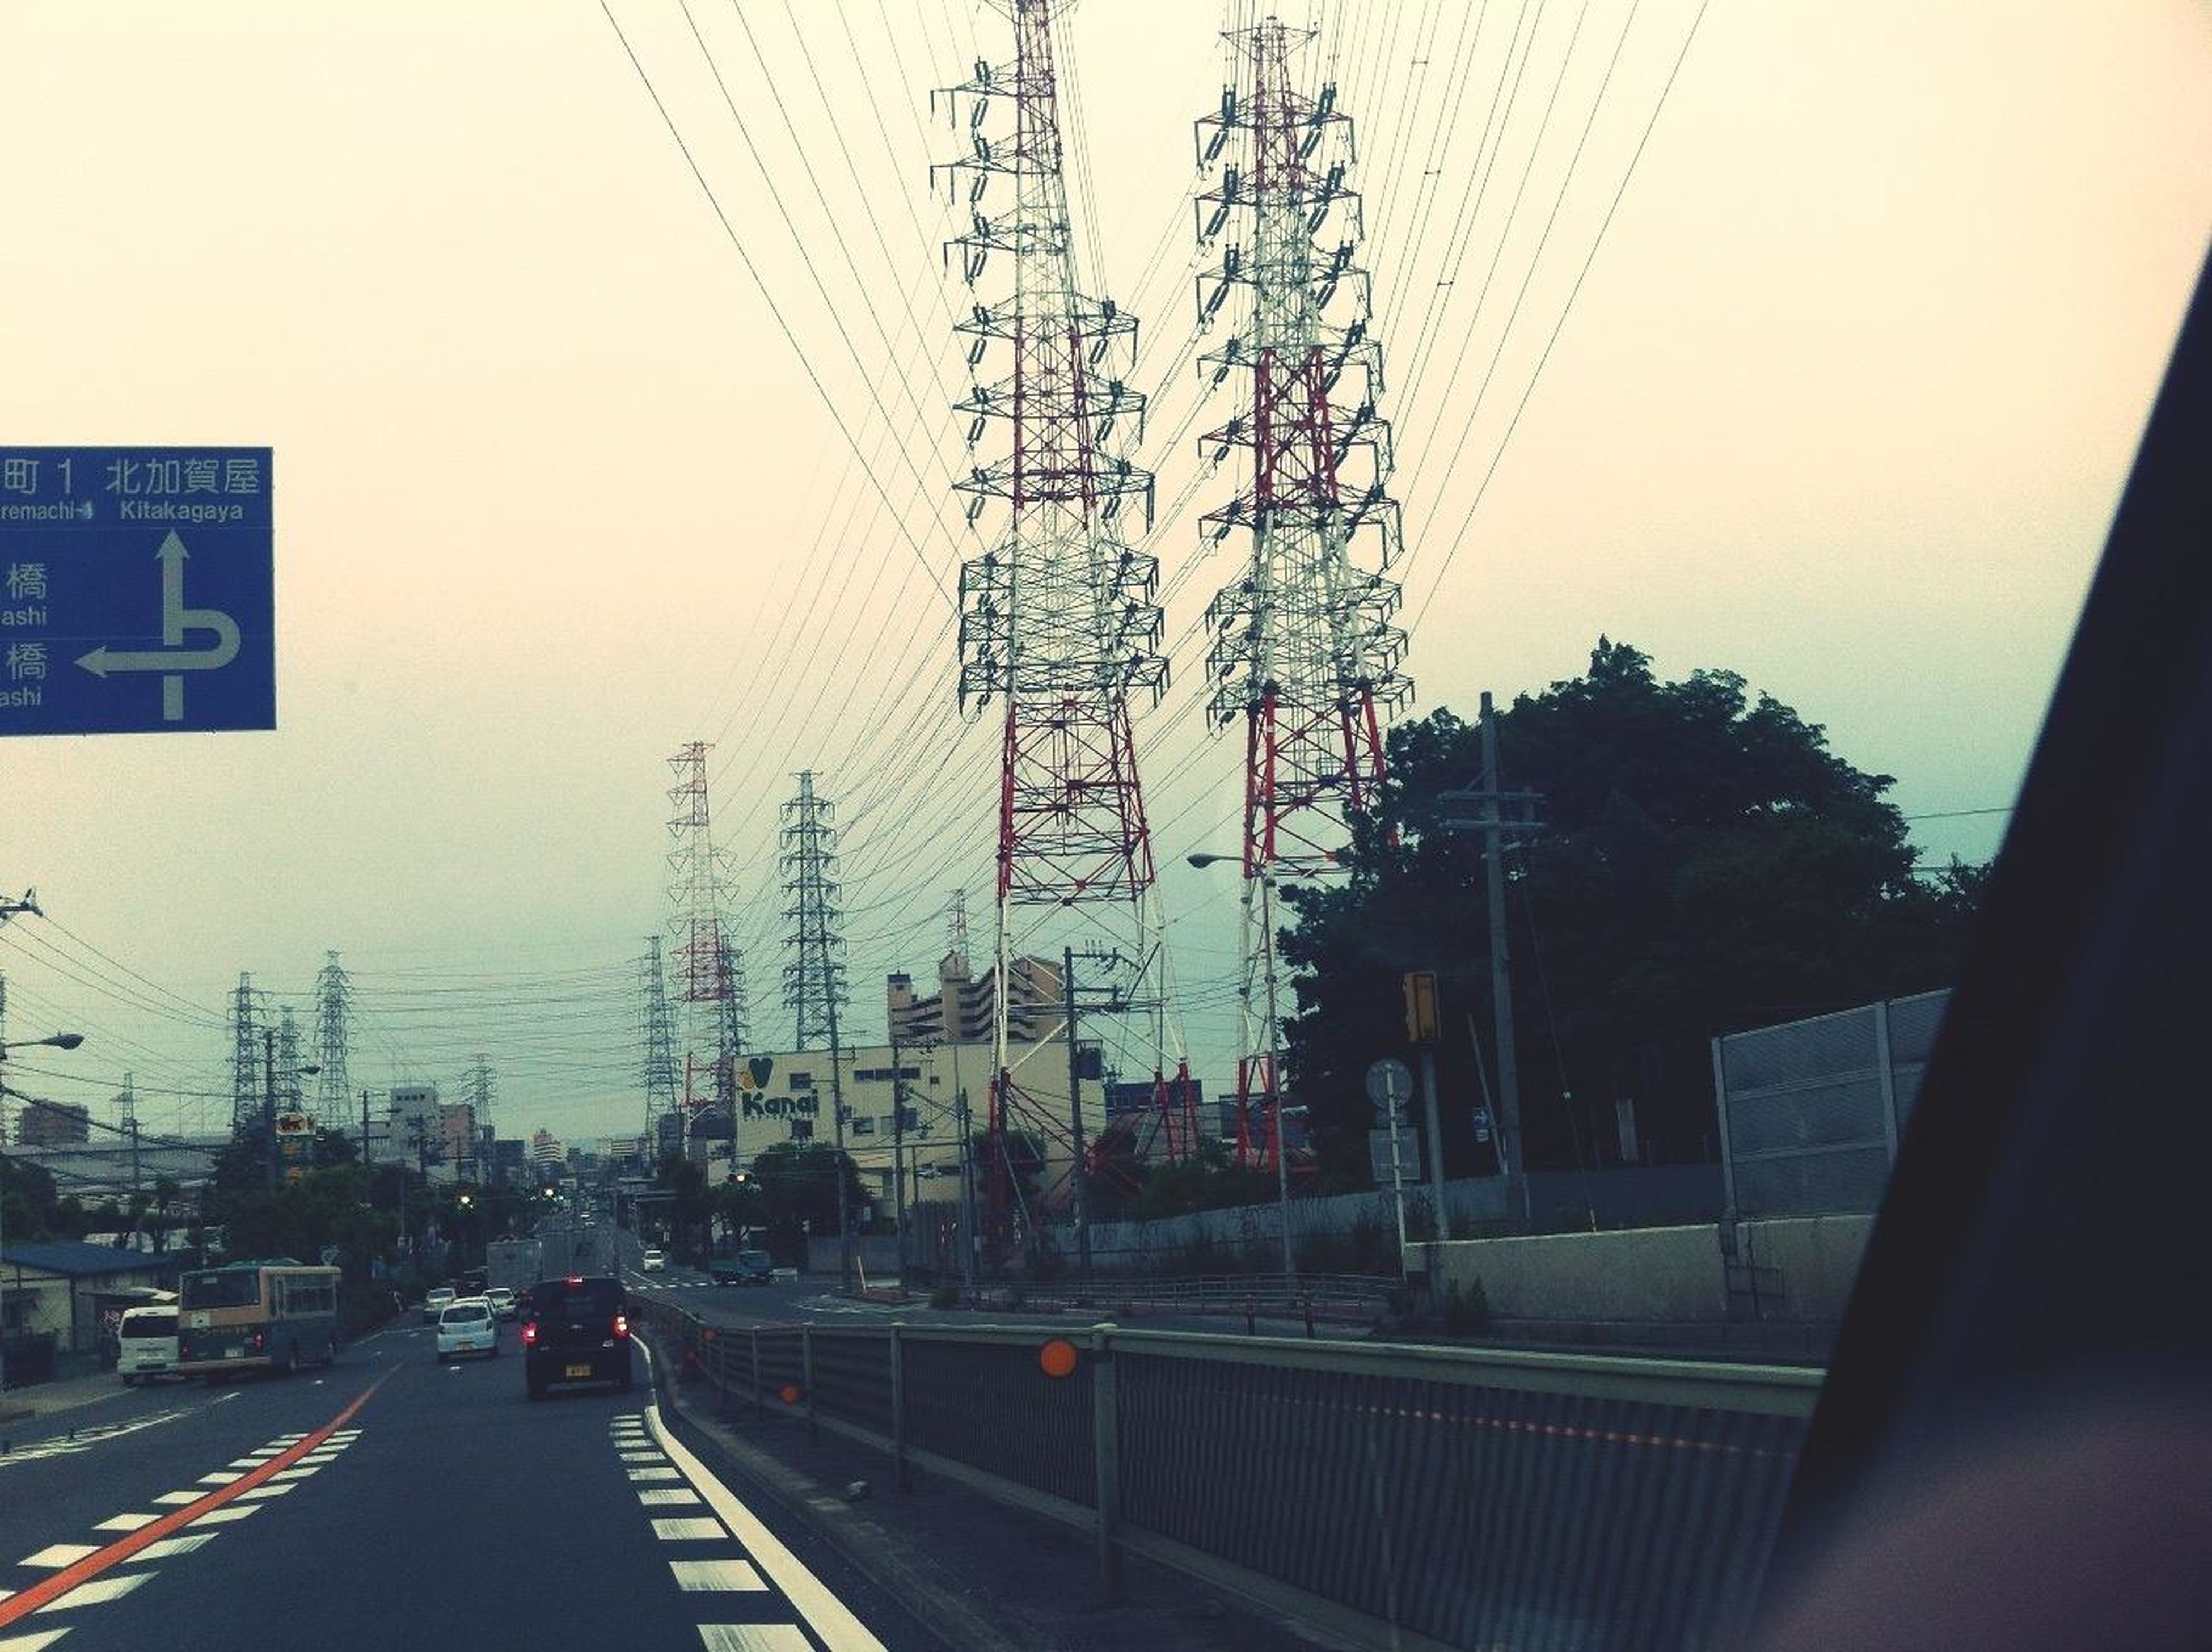 power line, transportation, electricity pylon, building exterior, road, cable, street, architecture, built structure, car, city, power supply, electricity, clear sky, sky, connection, power cable, land vehicle, mode of transport, tree